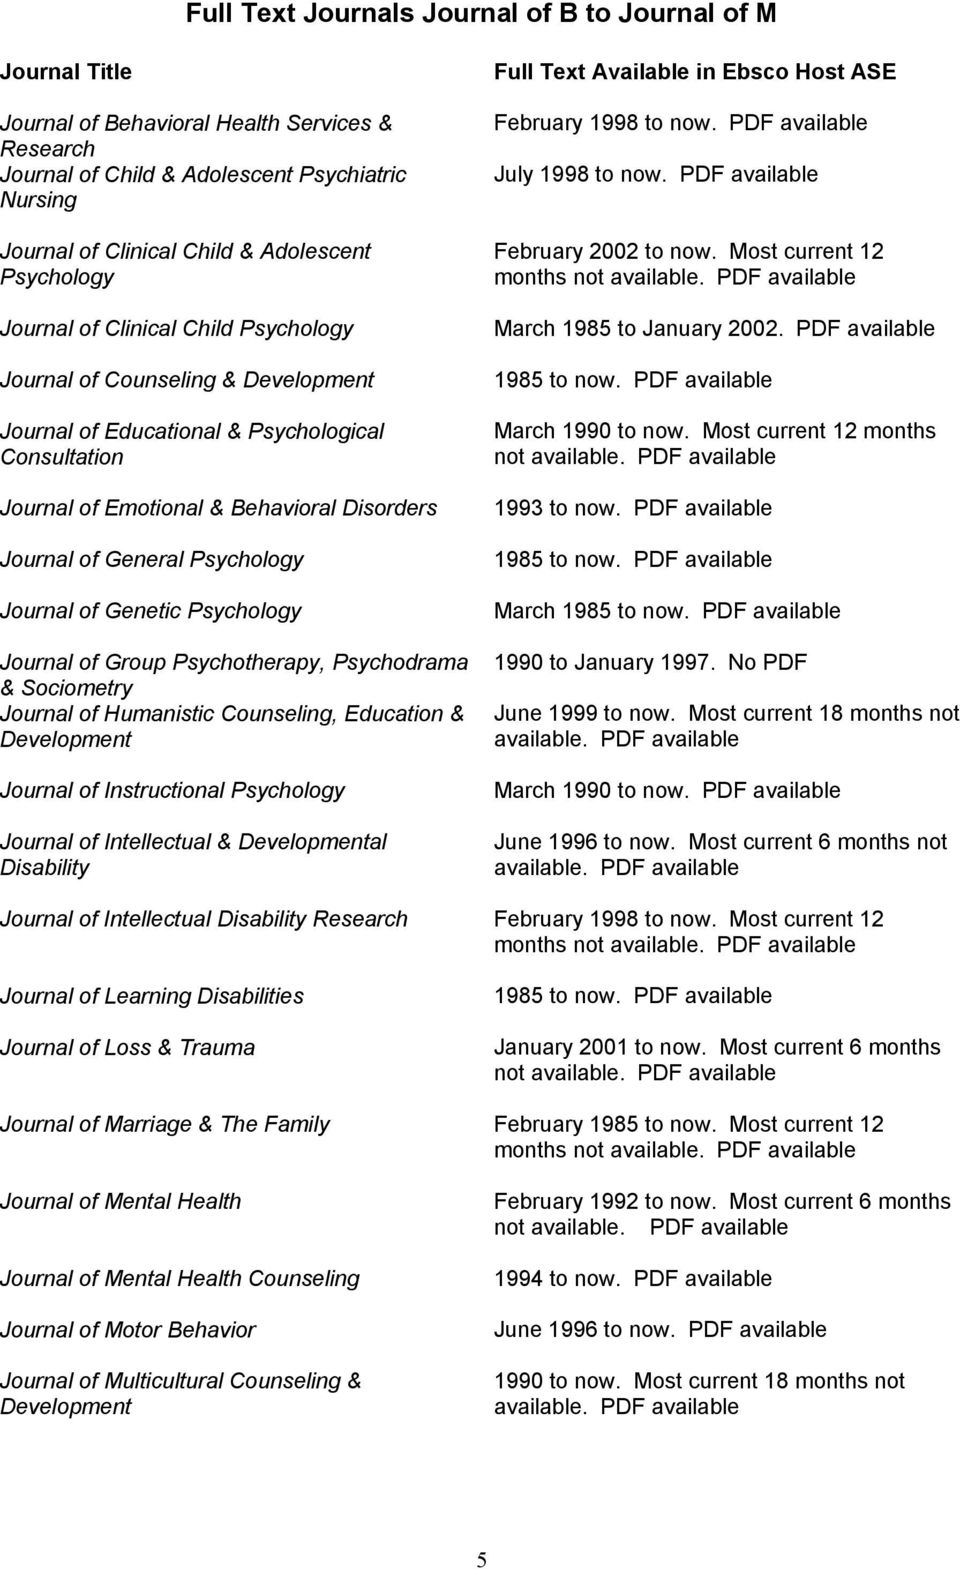 Group Psychotherapy, Psychodrama & Sociometry Journal of Humanistic Counseling, Education & Development Journal of Instructional Journal of Intellectual & Developmental Disability February.